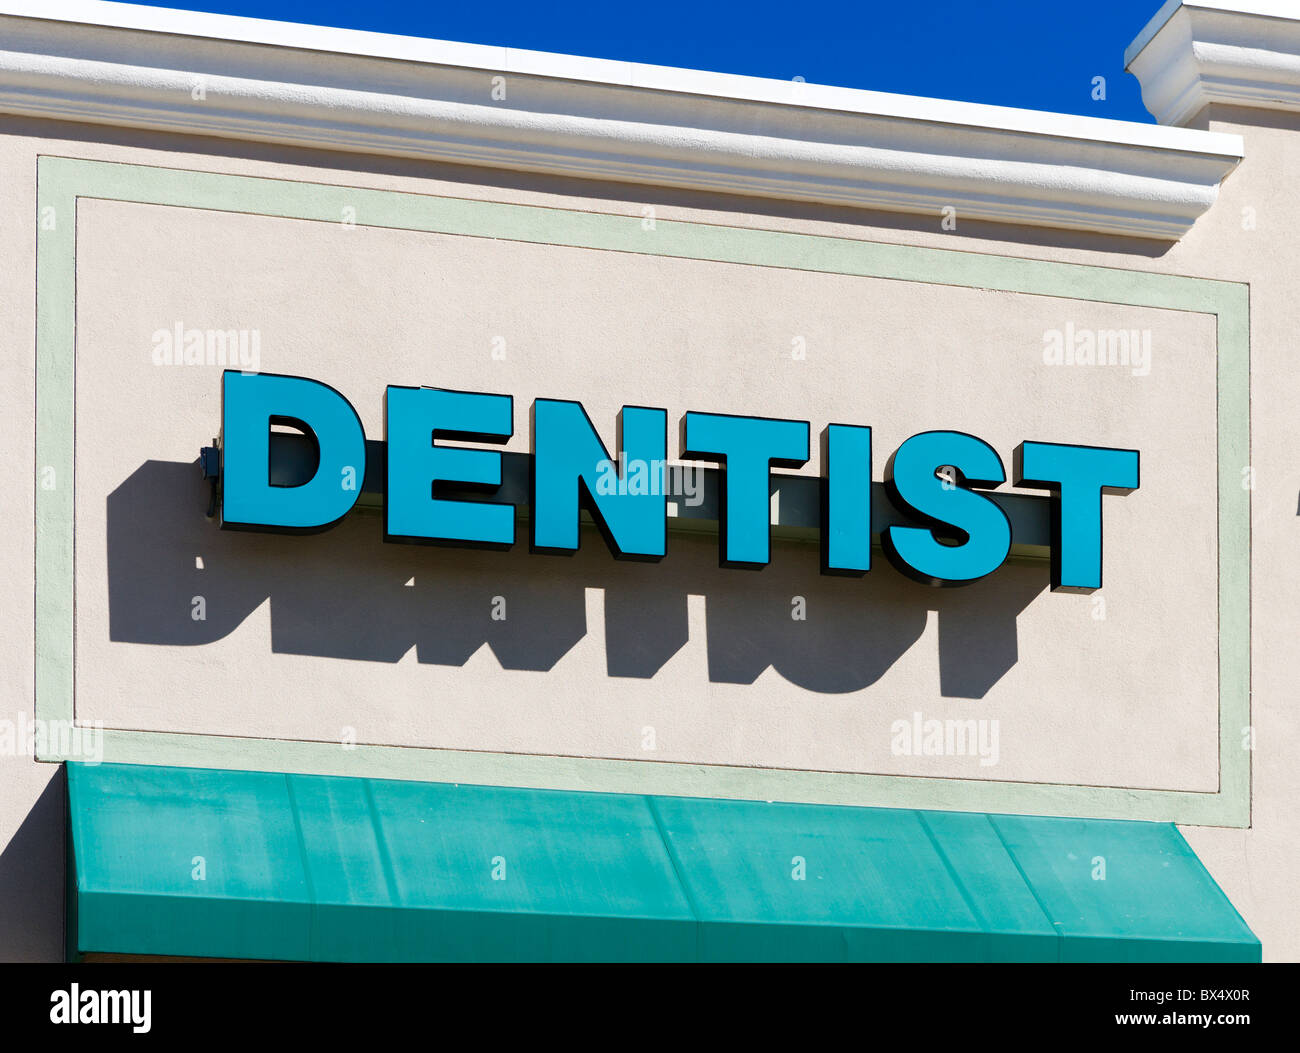 Sign for a Dentist surgery near the Eagle Ridge Mall, Lake Wales, Central Florida, USA - Stock Image